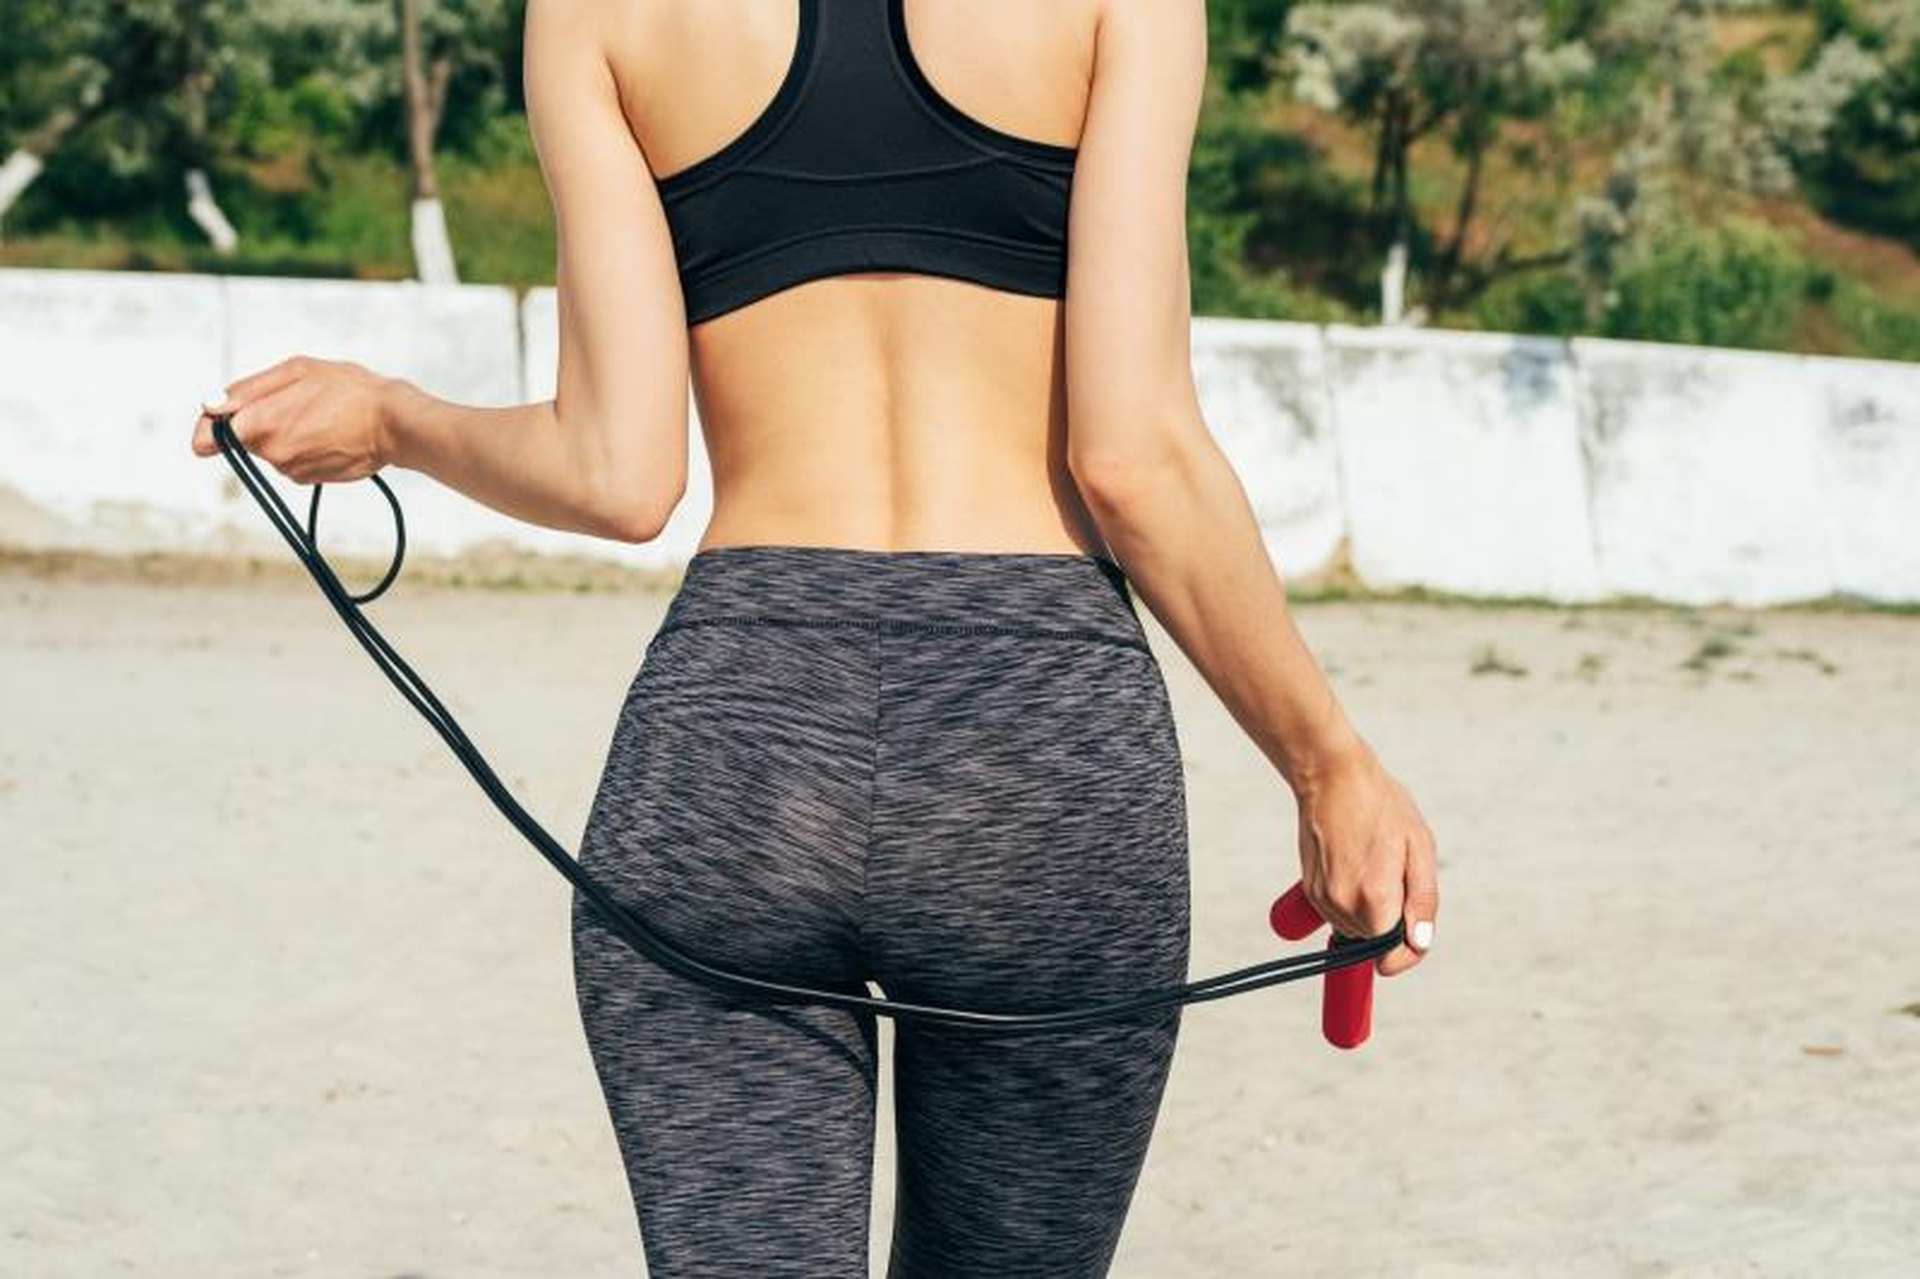 health tips for a flat stomach & bigger butt | livestrong